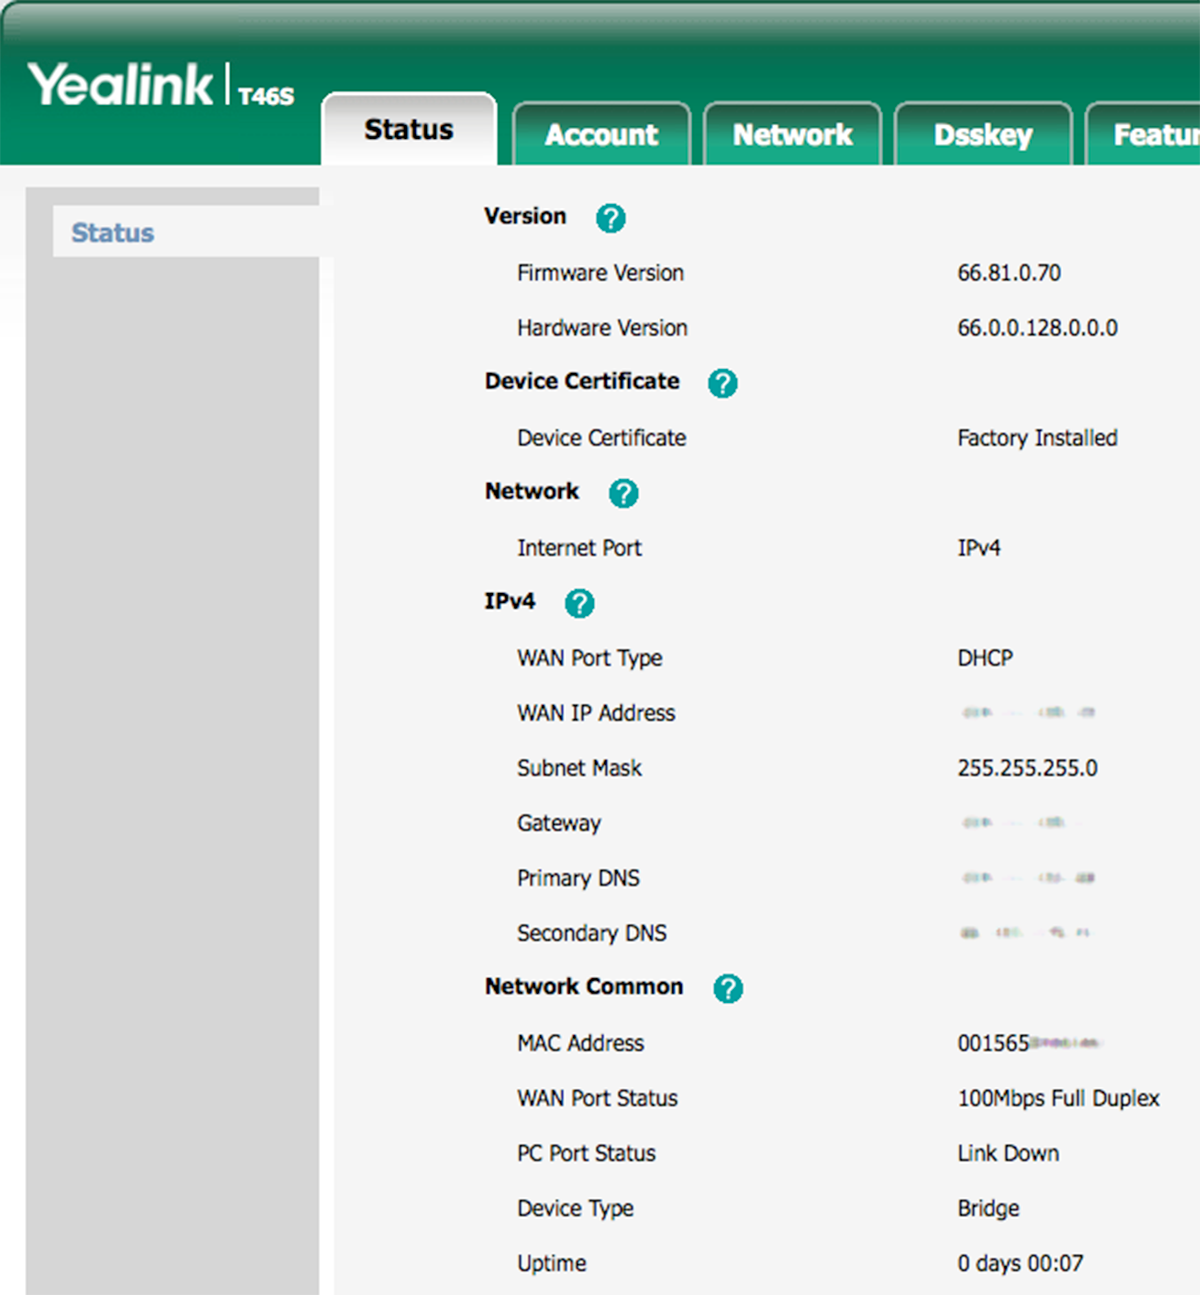 Yealink T46S Configuration and Review